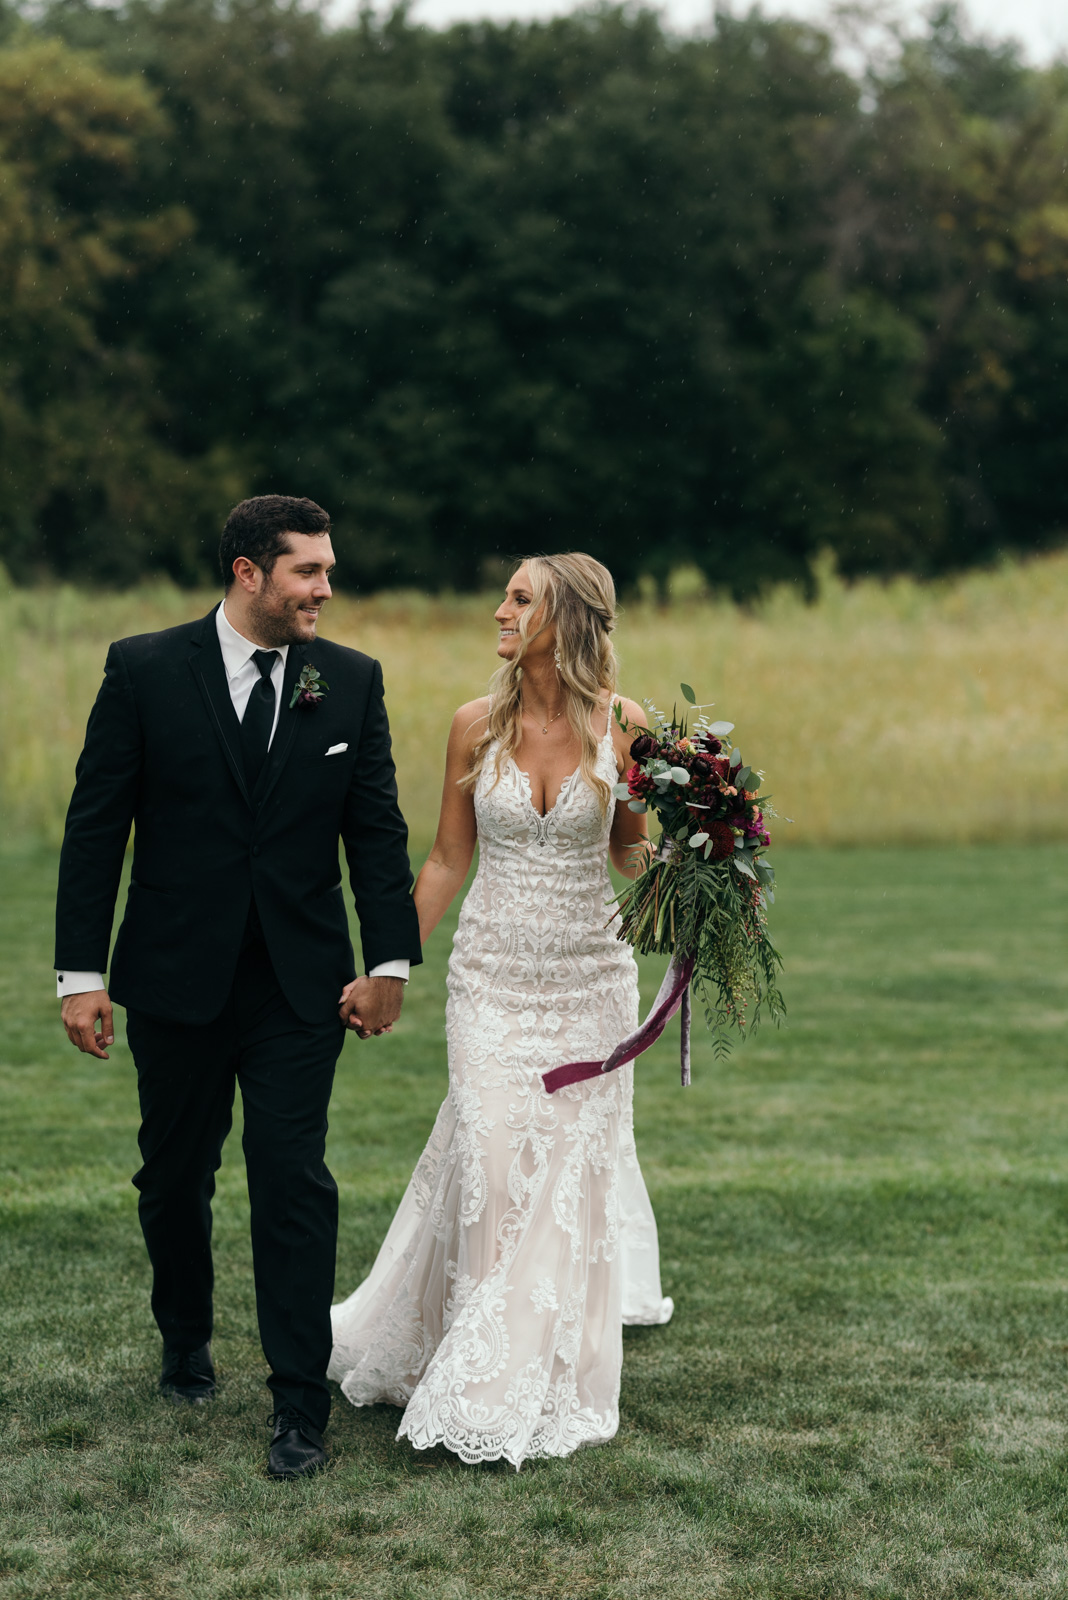 Cedar Rapids Wedding | Ashton Hill Farm | Kelsey + Ryan